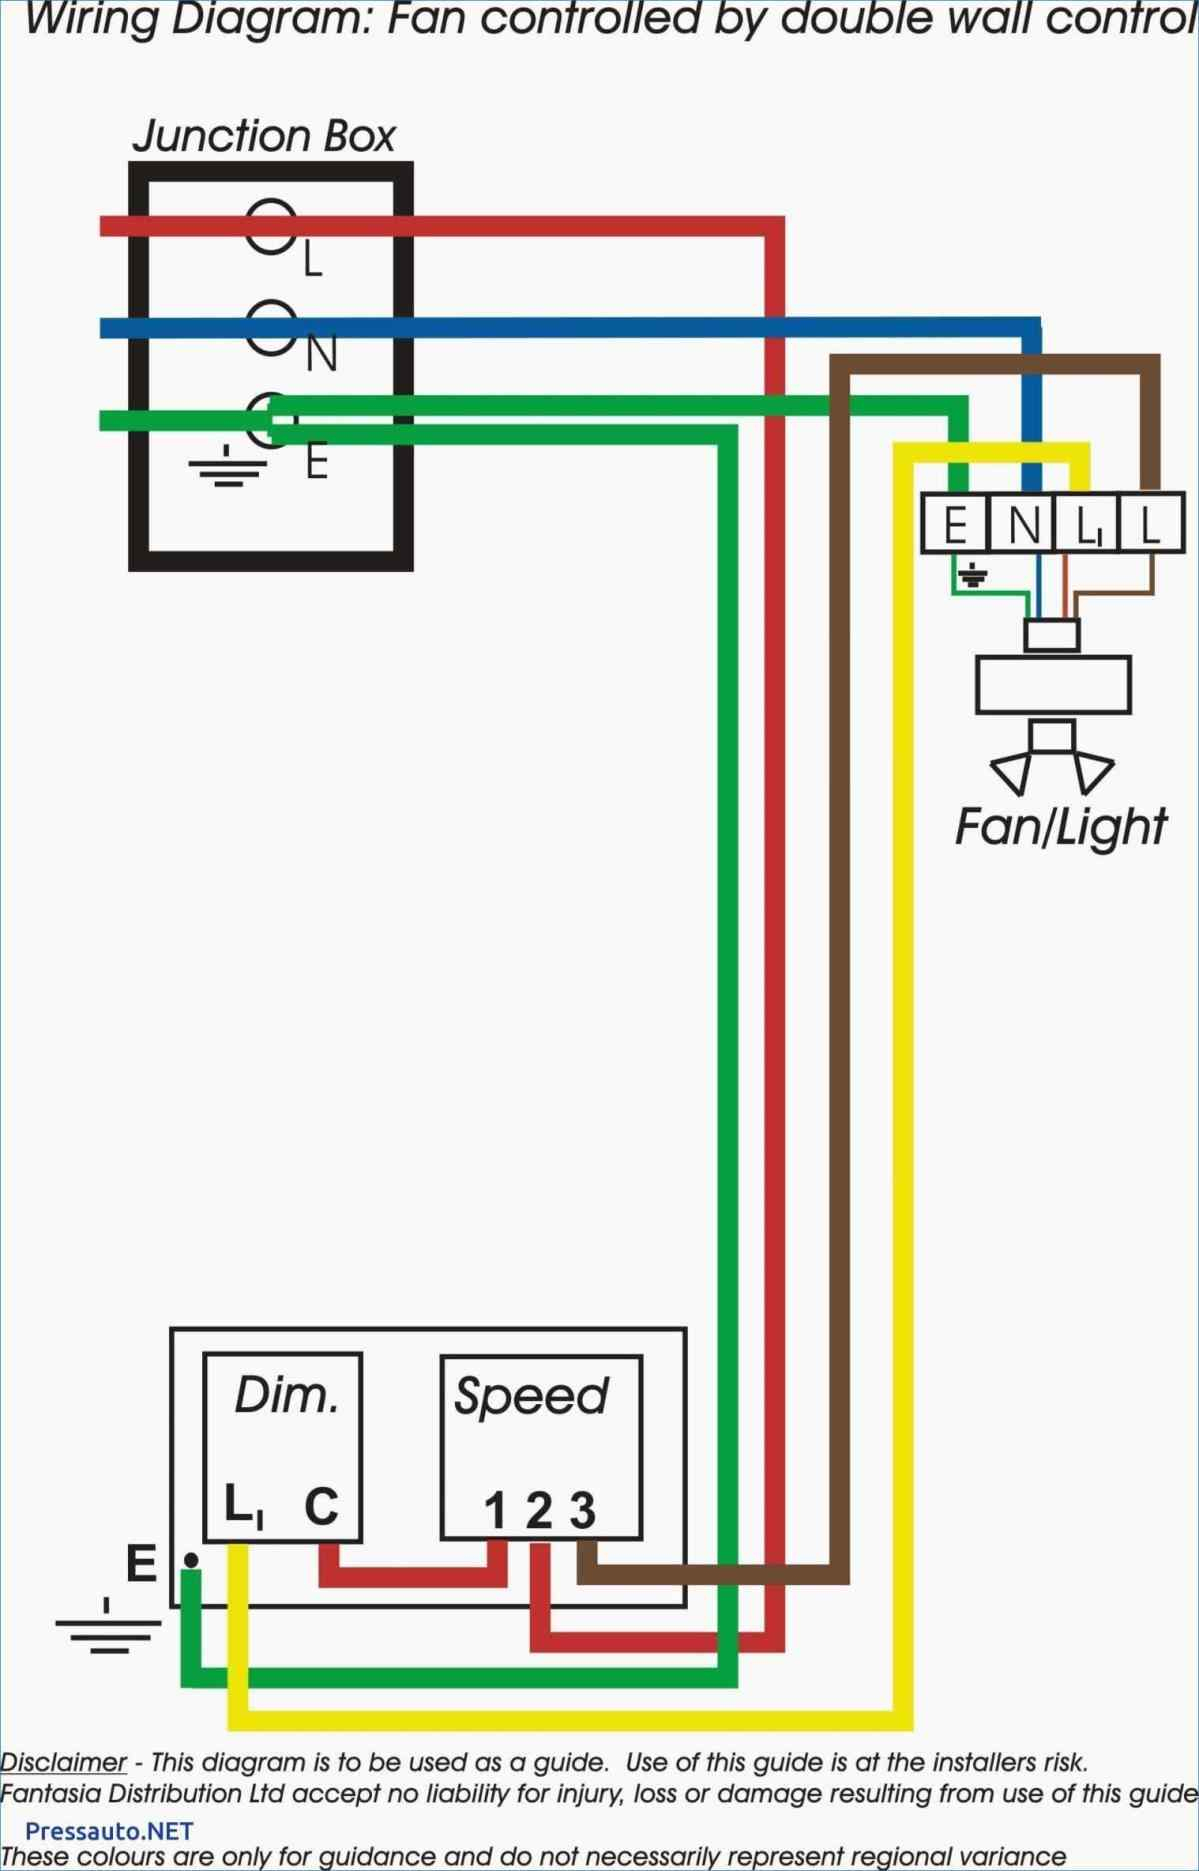 Usb 3 0 Micro B Wiring Diagram | Manual E-Books - Usb 3.0 Wiring Diagram